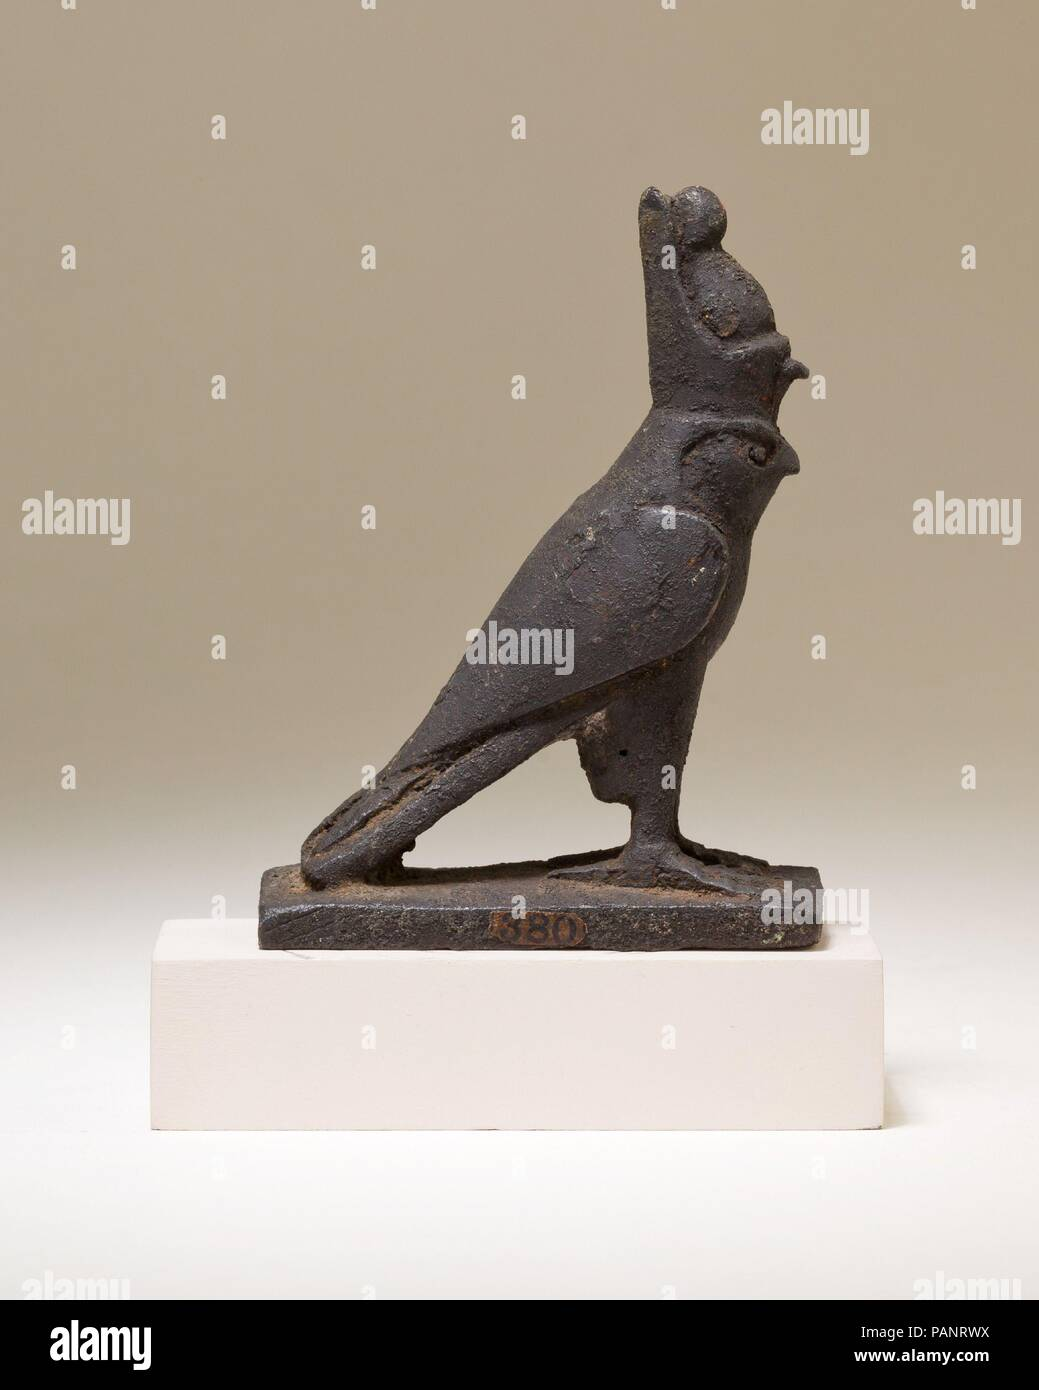 Horus falcon figure. Dimensions: H. 8.2 cm (3 1/4 in.); W. 2.5 cm (1 in.); L. 6.3 cm (2 1/2 in.). Date: 664-30 B.C..  The falcon god Horus stands with his wings swept back. He wears the double crown of Egypt, a royal crown that symbolizes the union of Lower and Upper Egypt, and highlights Horus' role as the legitimate ruler of the entire land. The falcon wears the double crown because Horus and the concept of kingship were closely tied, as early as the Predynastic Period.   The falcon stands on a rectangular platform, which could have functioned in a number of ways. The figure could have been  - Stock Image